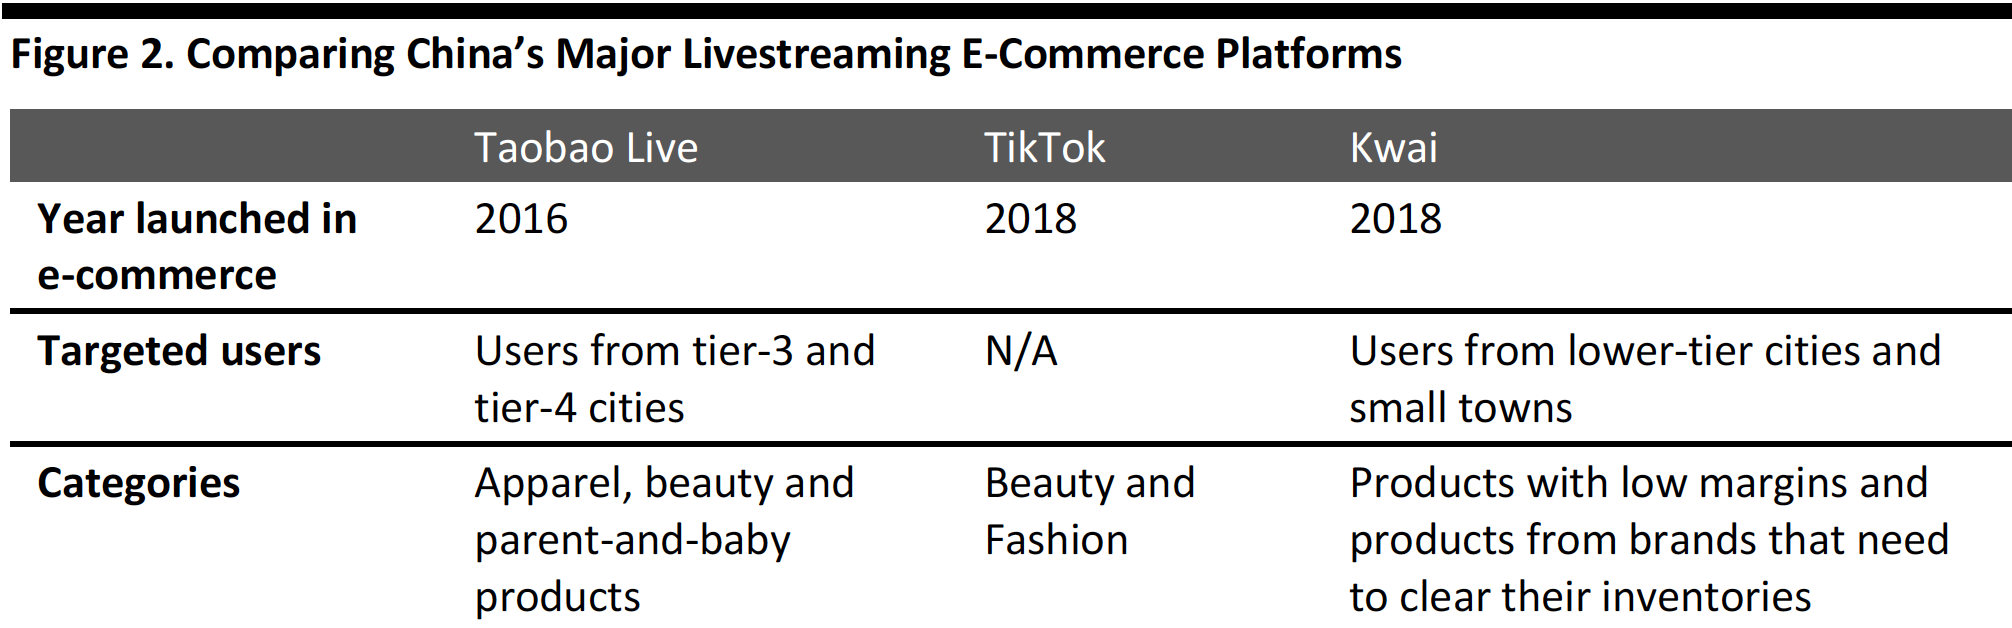 Figure 2. Comparing China's Major Livestreaming E-Commerce Platforms